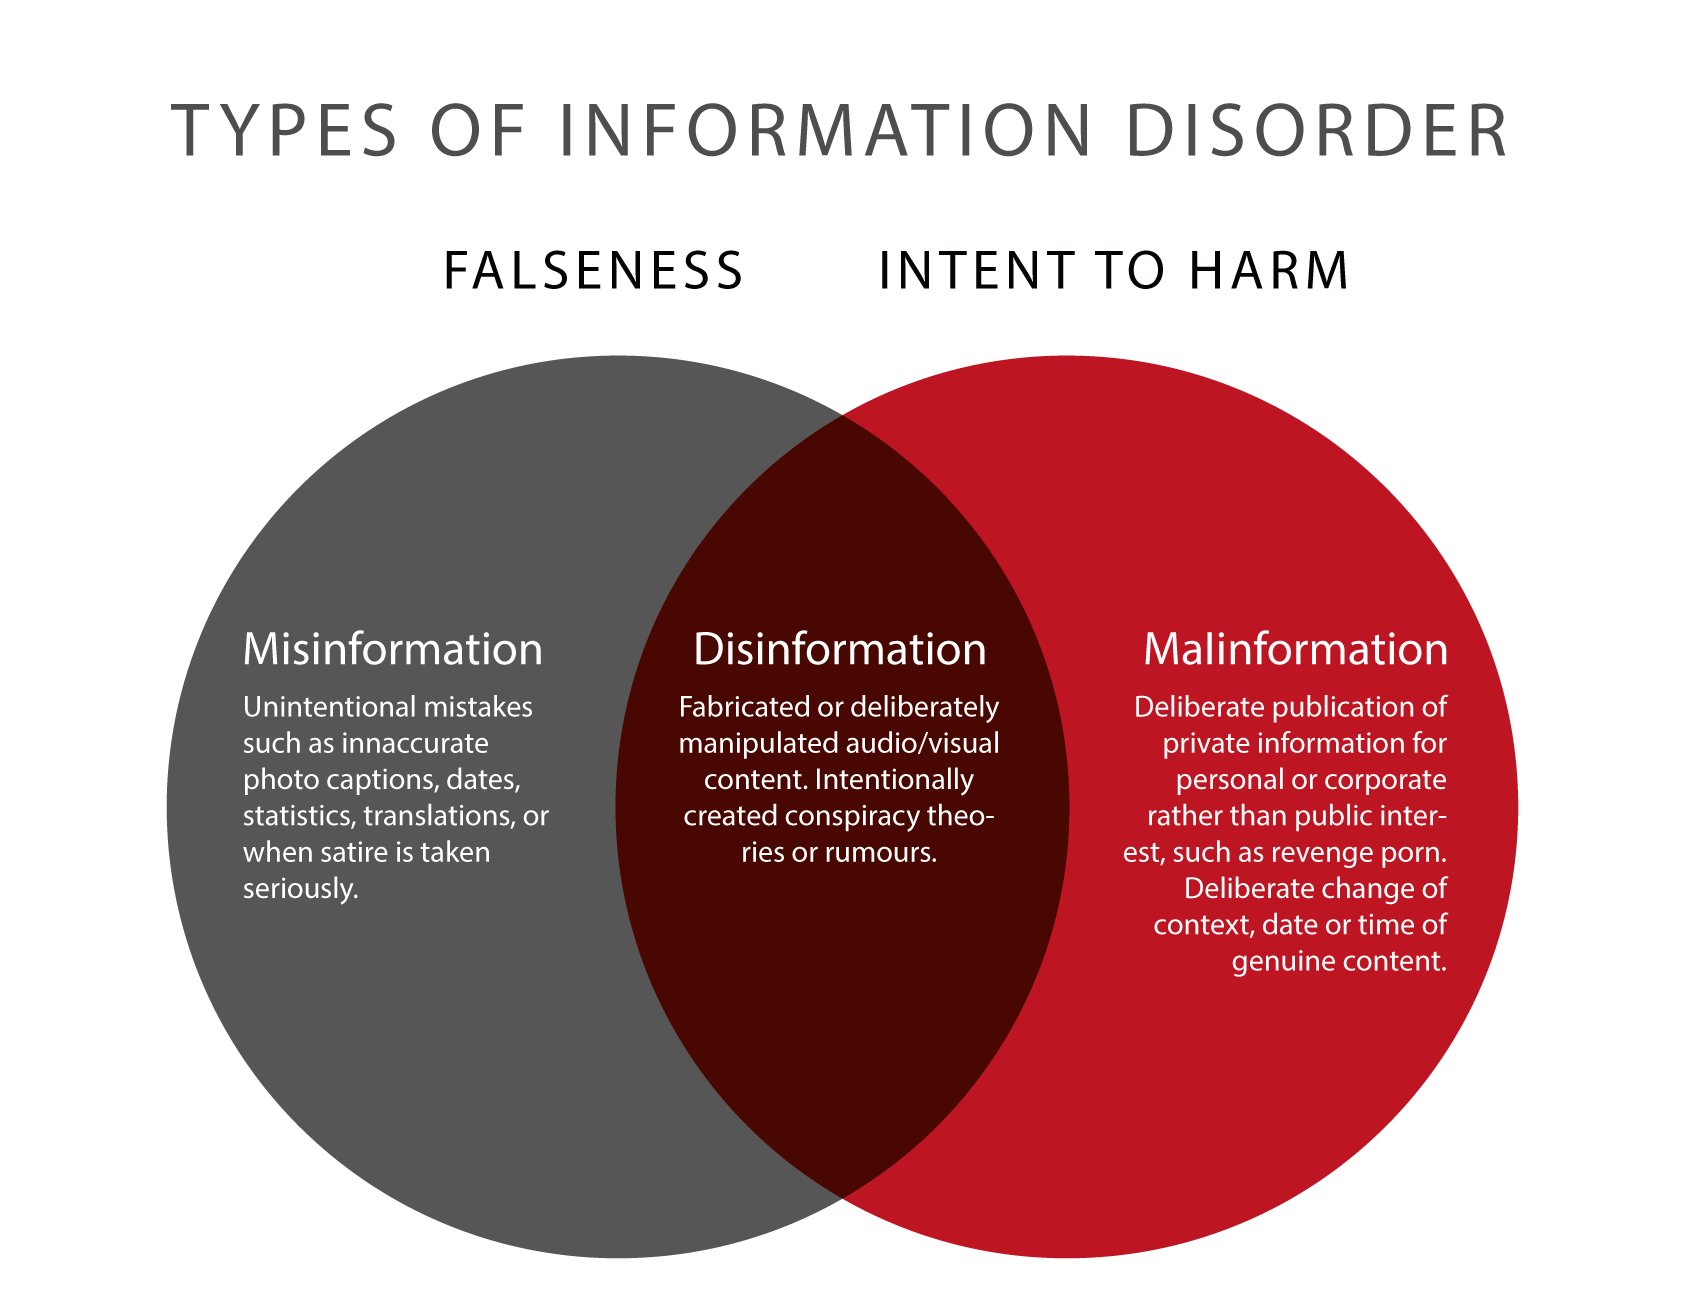 Tackling Information Disorder in the Era of Fake News